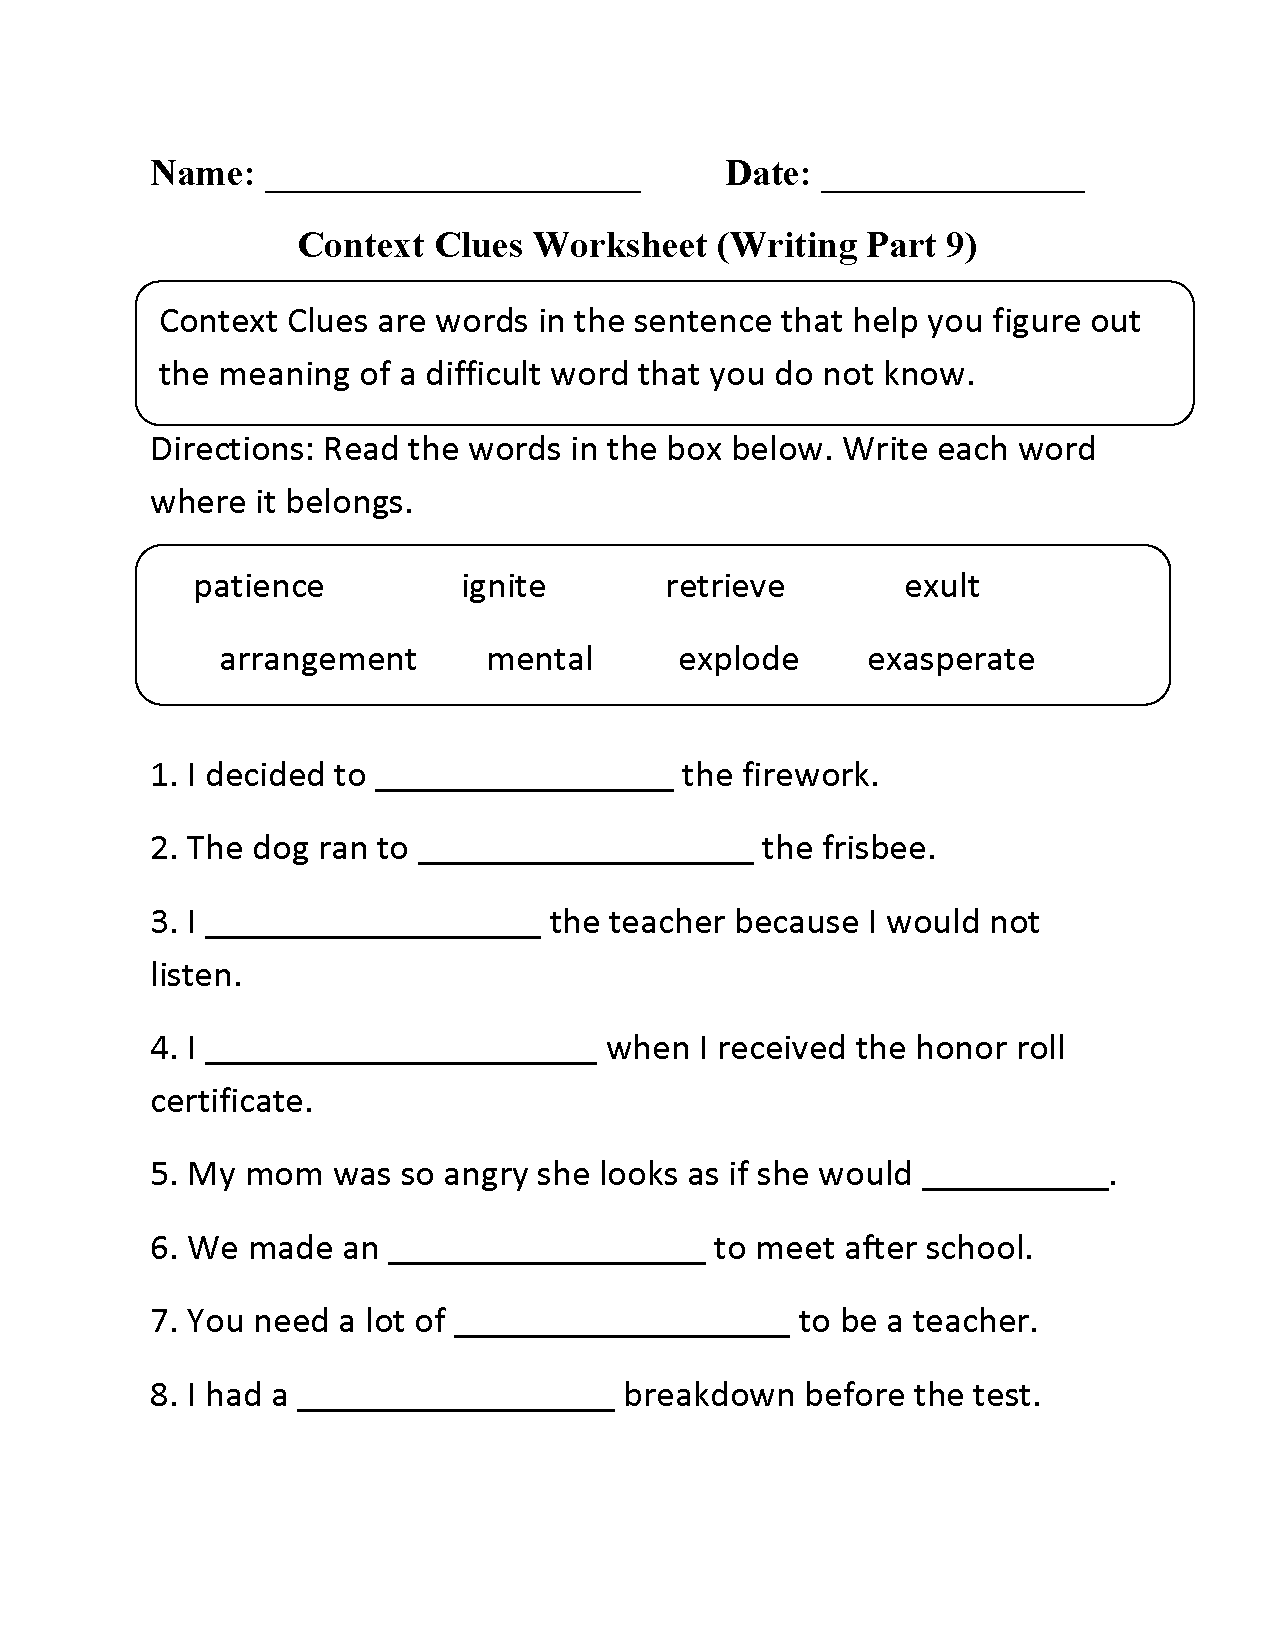 Uncategorized Context Clues Worksheets 3rd Grade teaching context clues to third grade lawteched englishlinx com worksheets